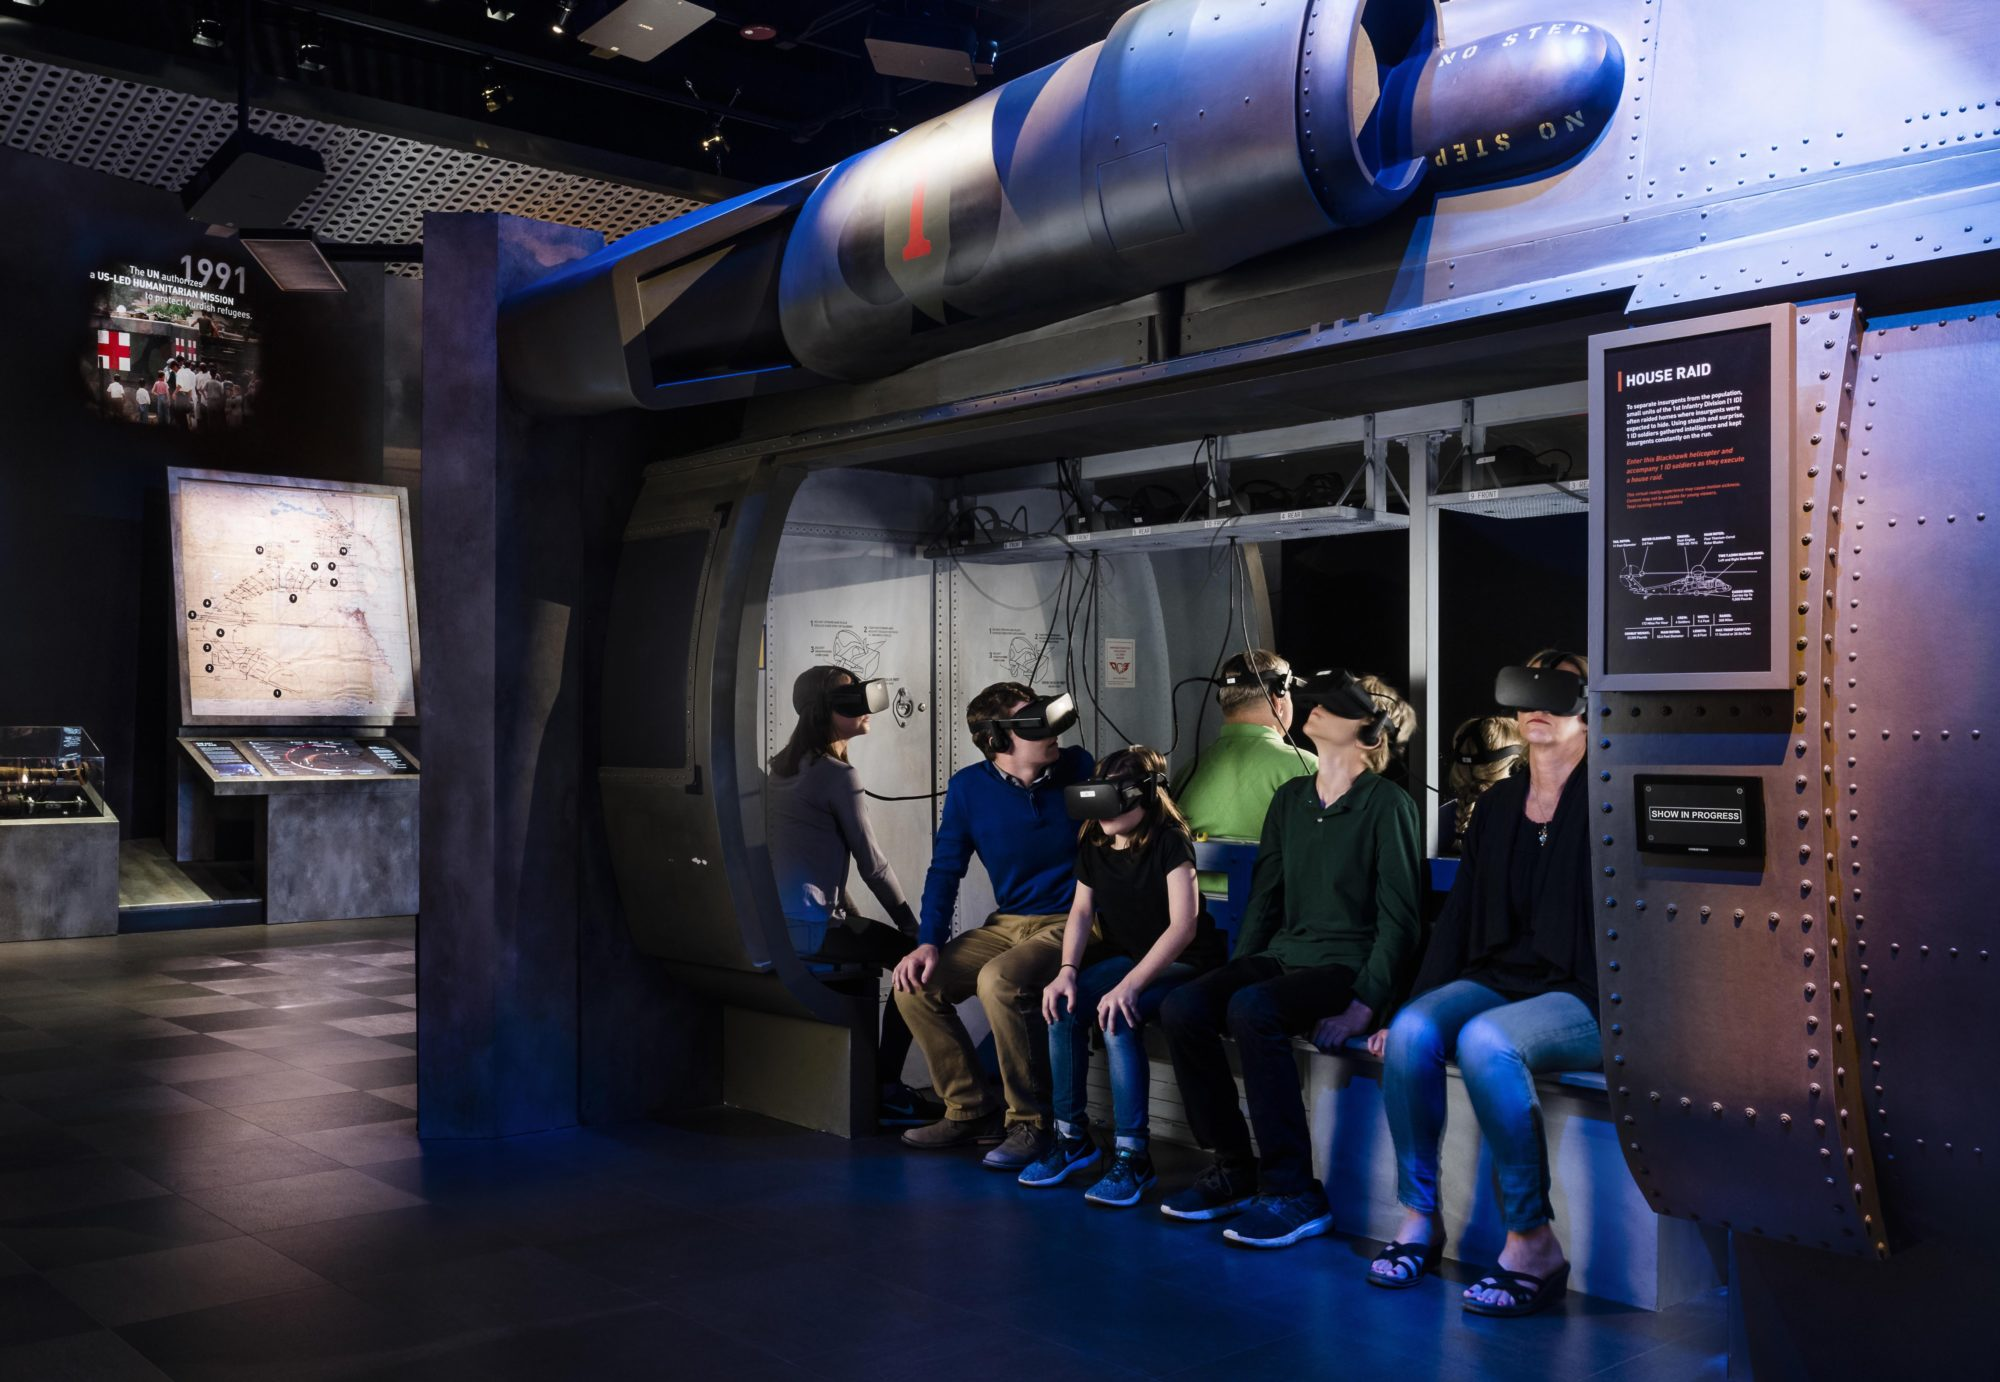 Group of students sitting in a simulator with VR headsets on their heads